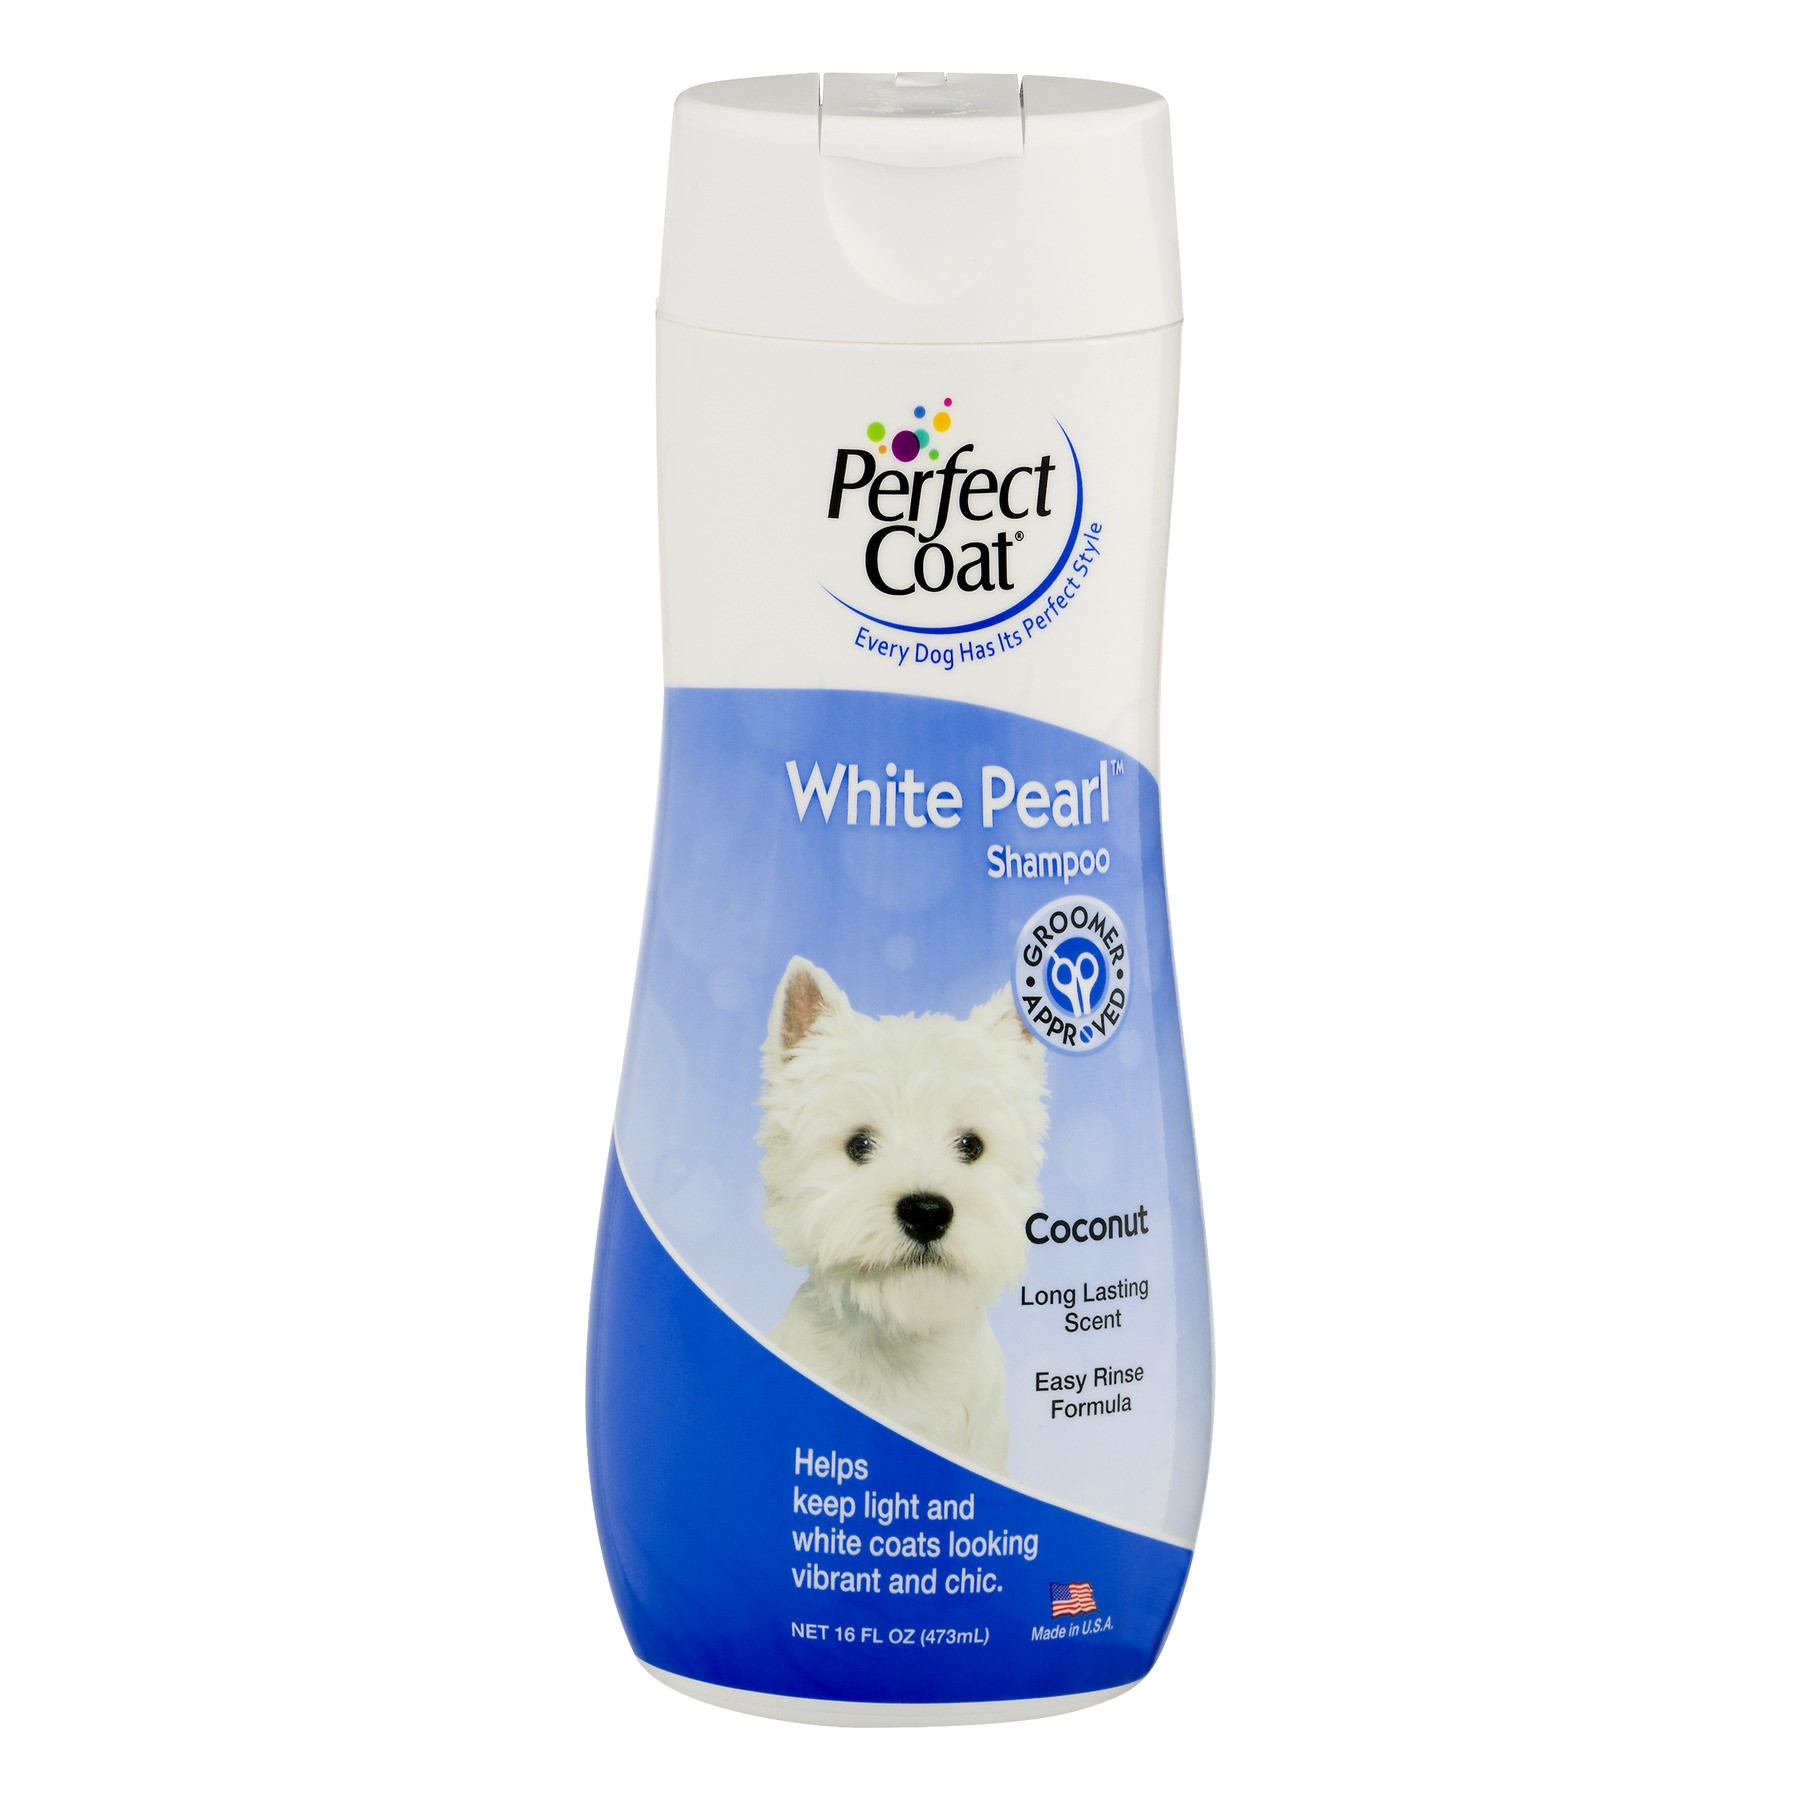 Perfect Coat White Pearl Coconut Scented Dog Shampoo, 16 fl oz